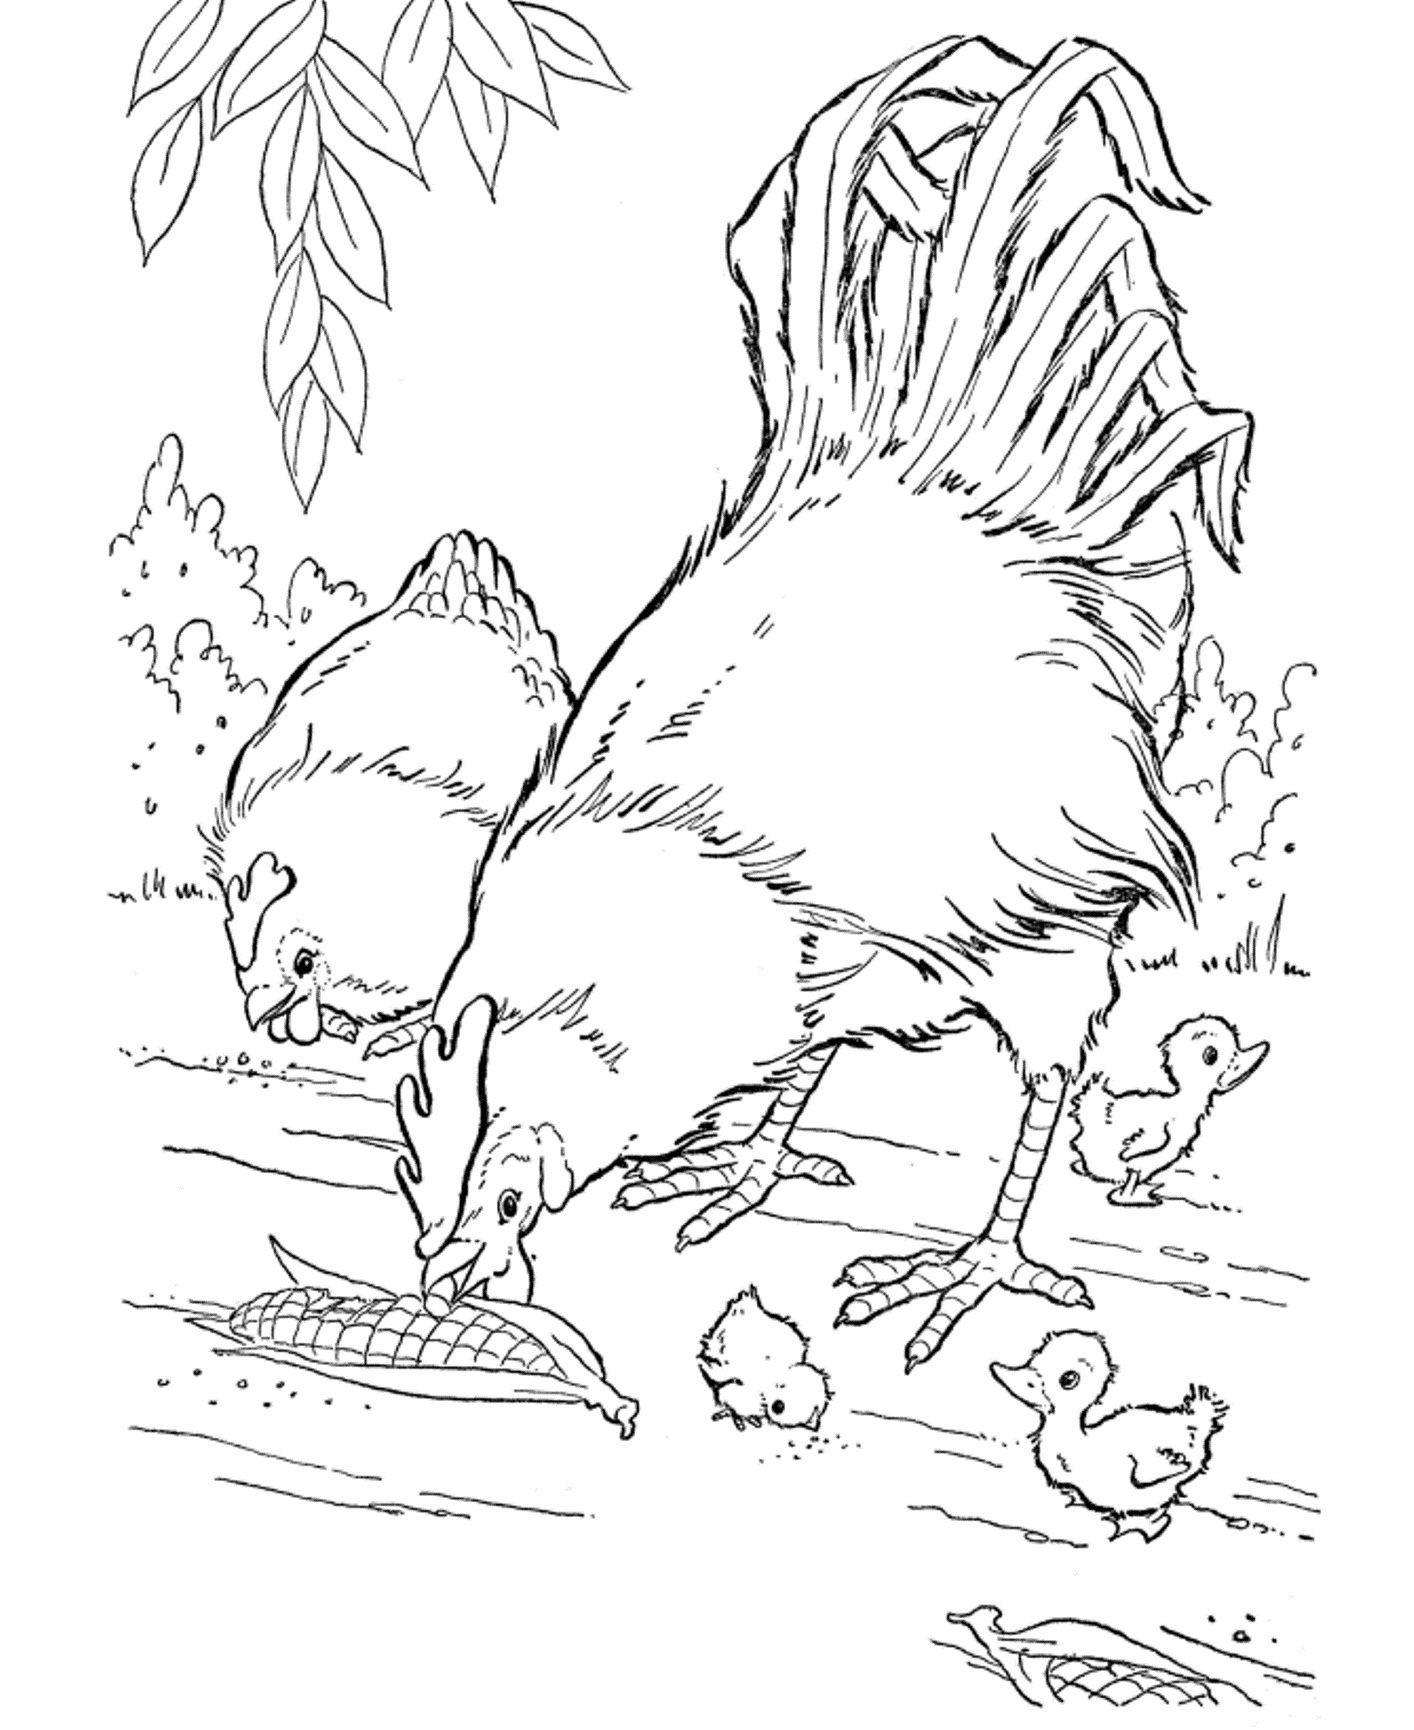 Free Printable Farm Animal Coloring Pages For Kids | Adult Coloring - Free Printable Farm Animal Pictures